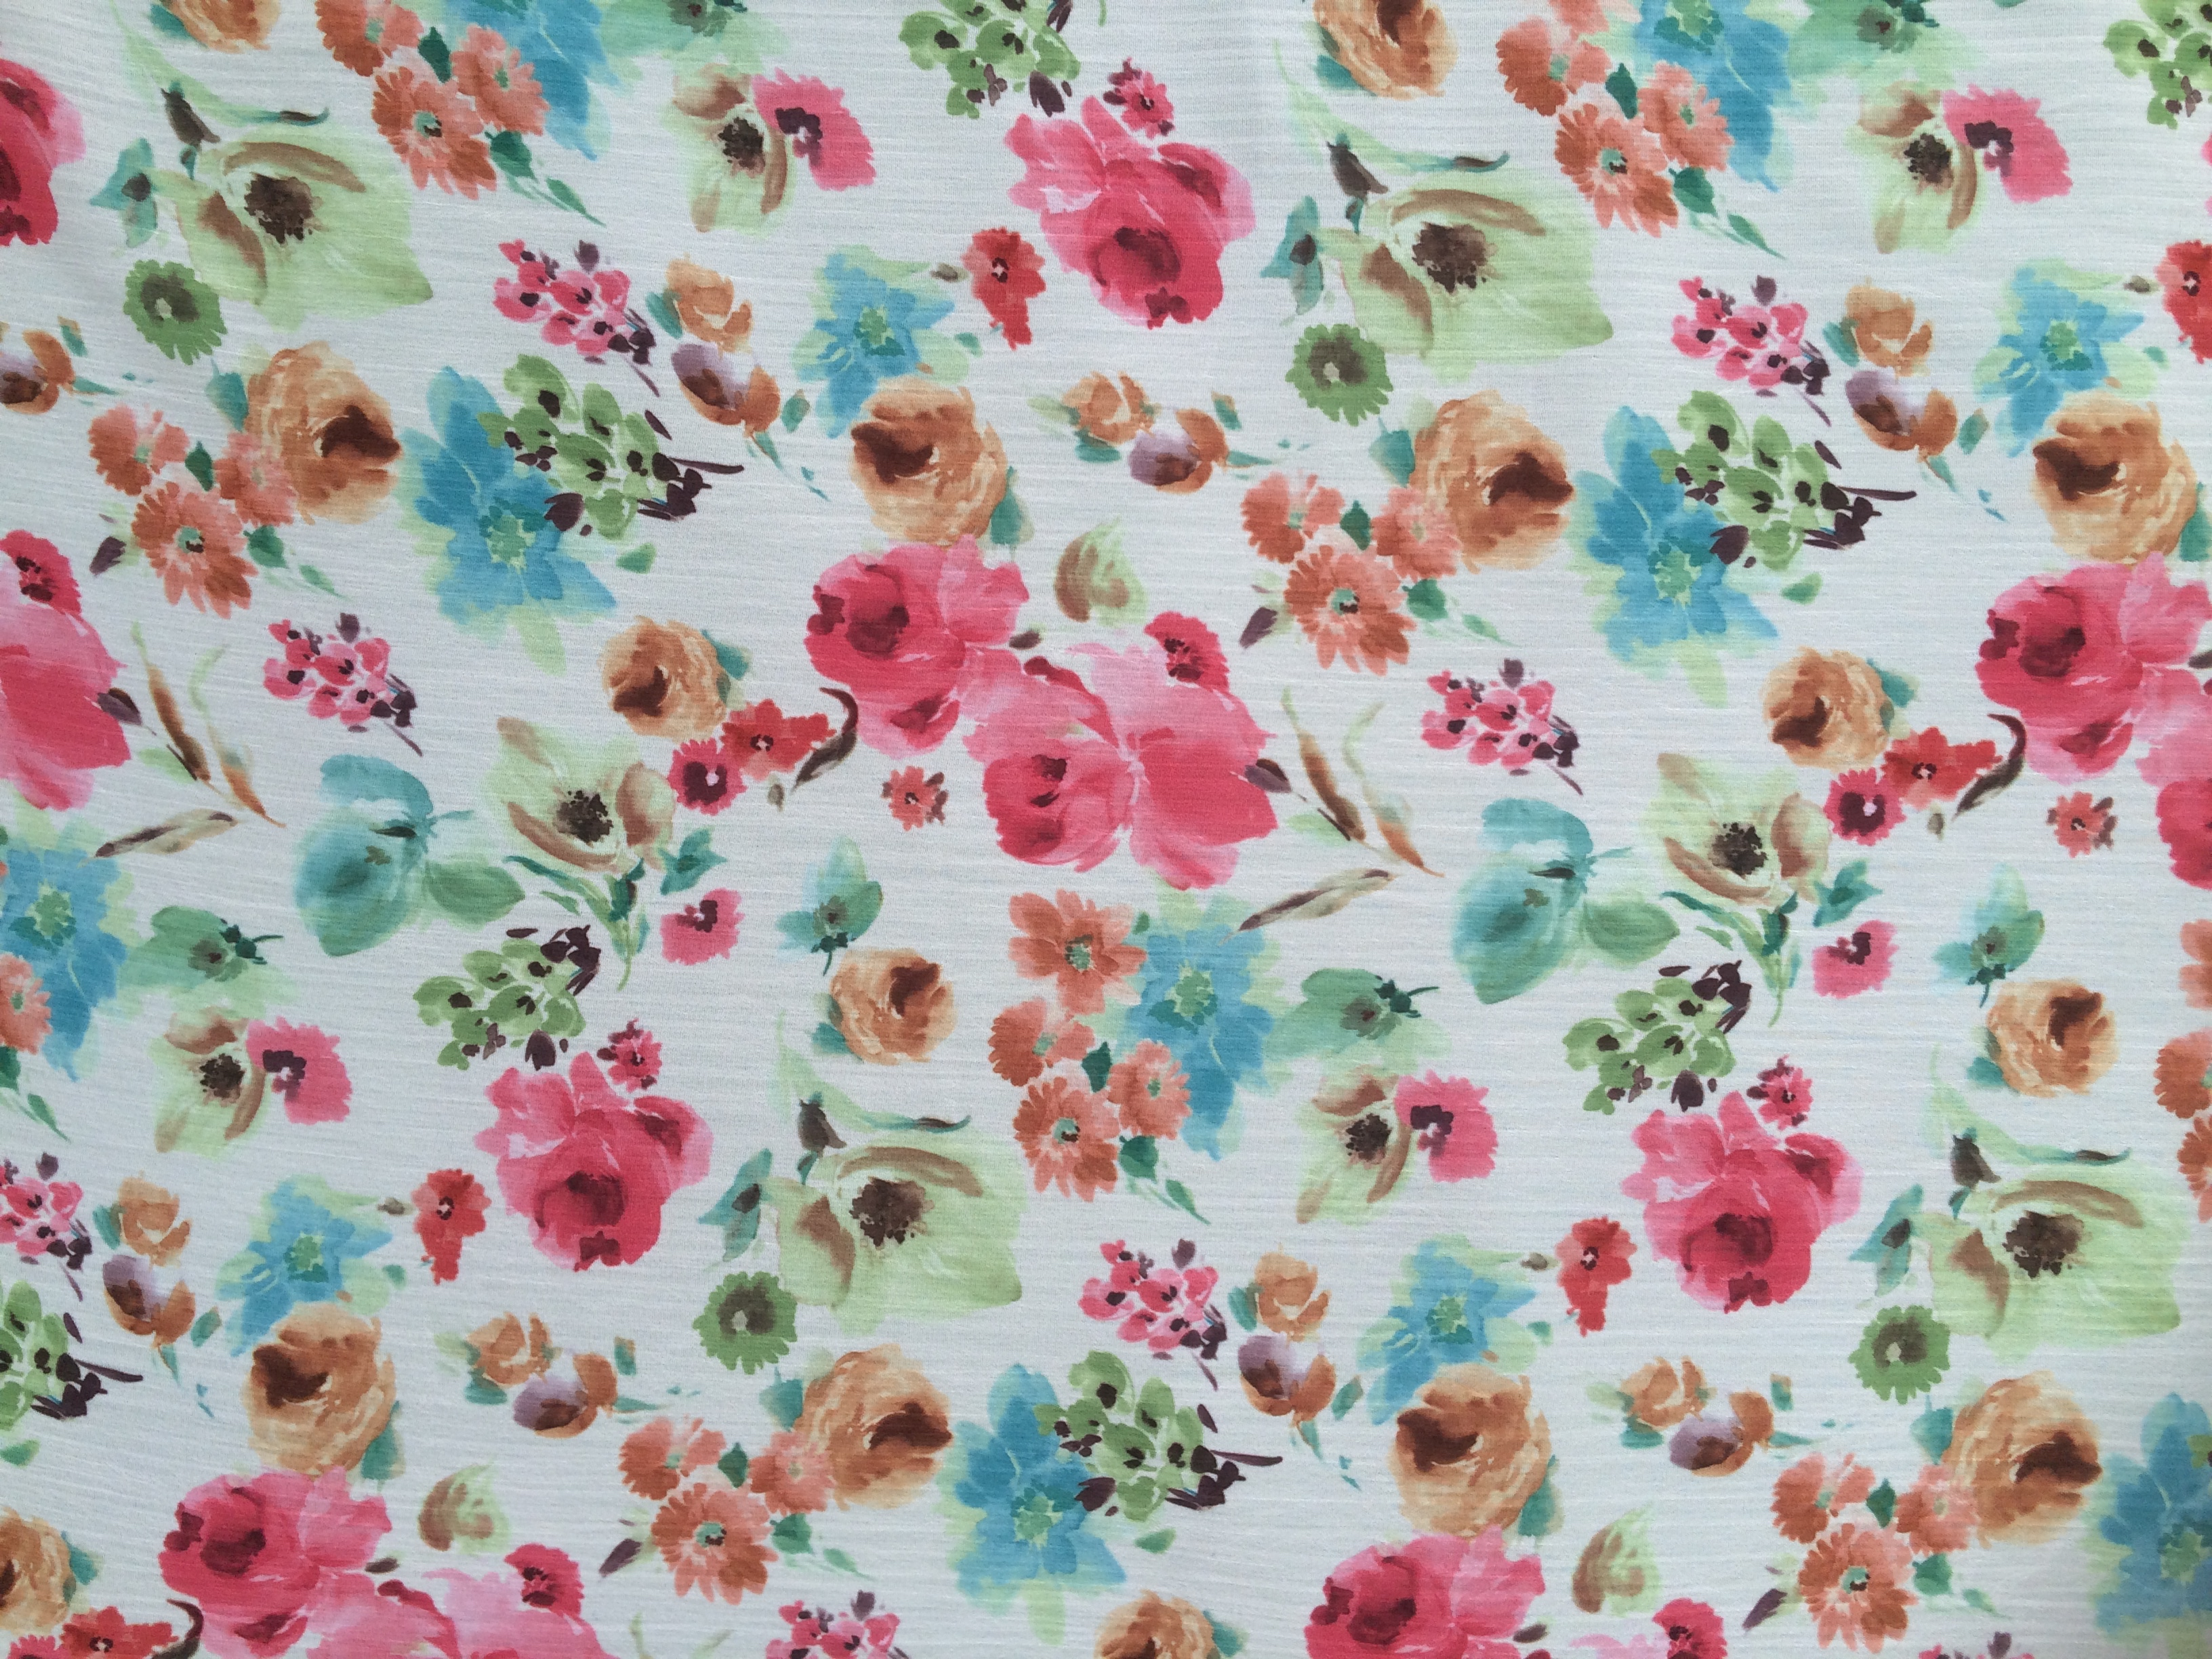 Floral fabric designs sewing avenue for Fabric designs